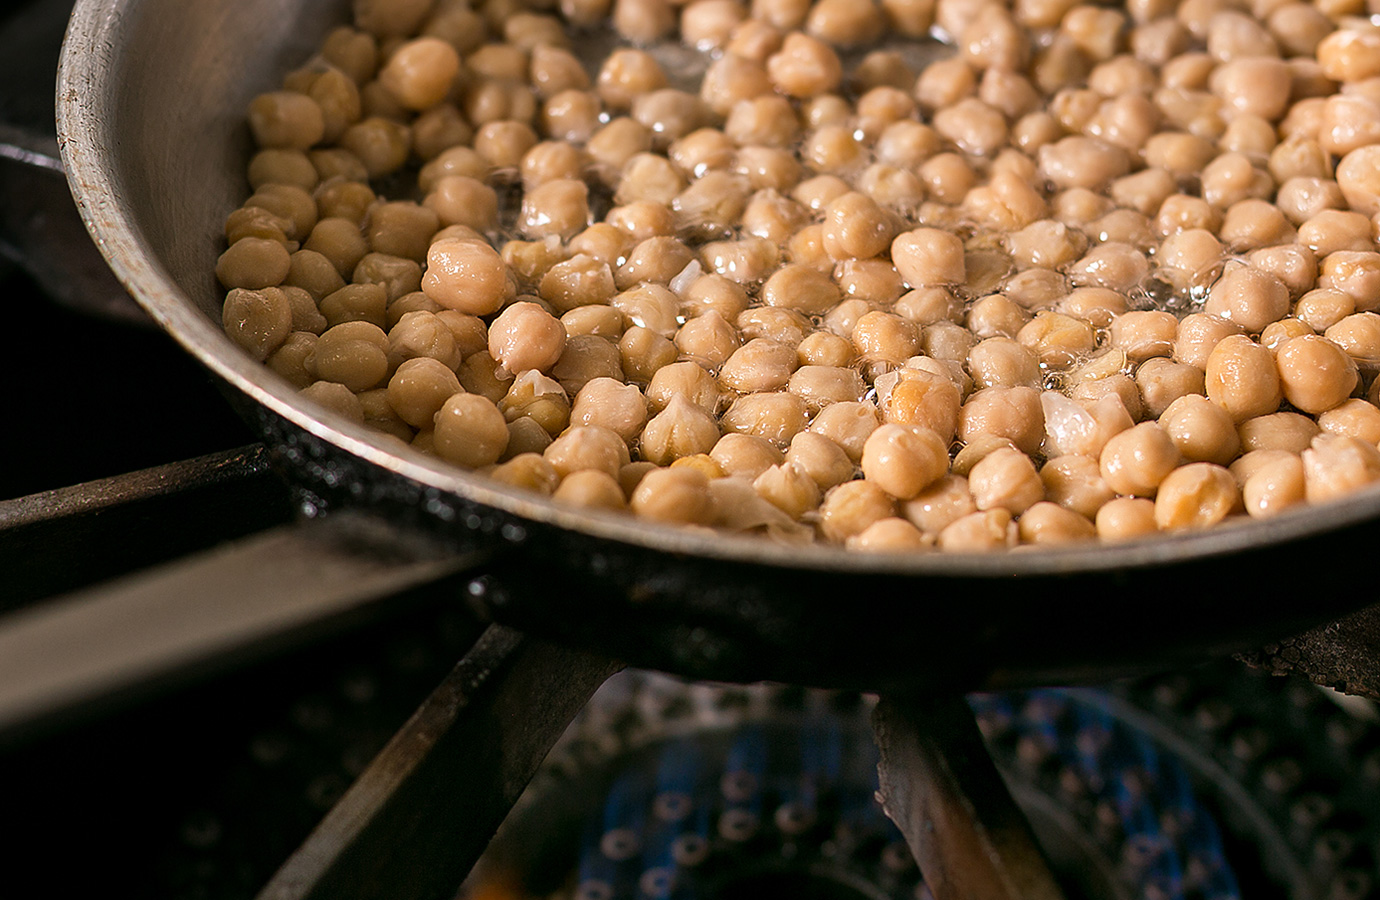 Frying chickpeas